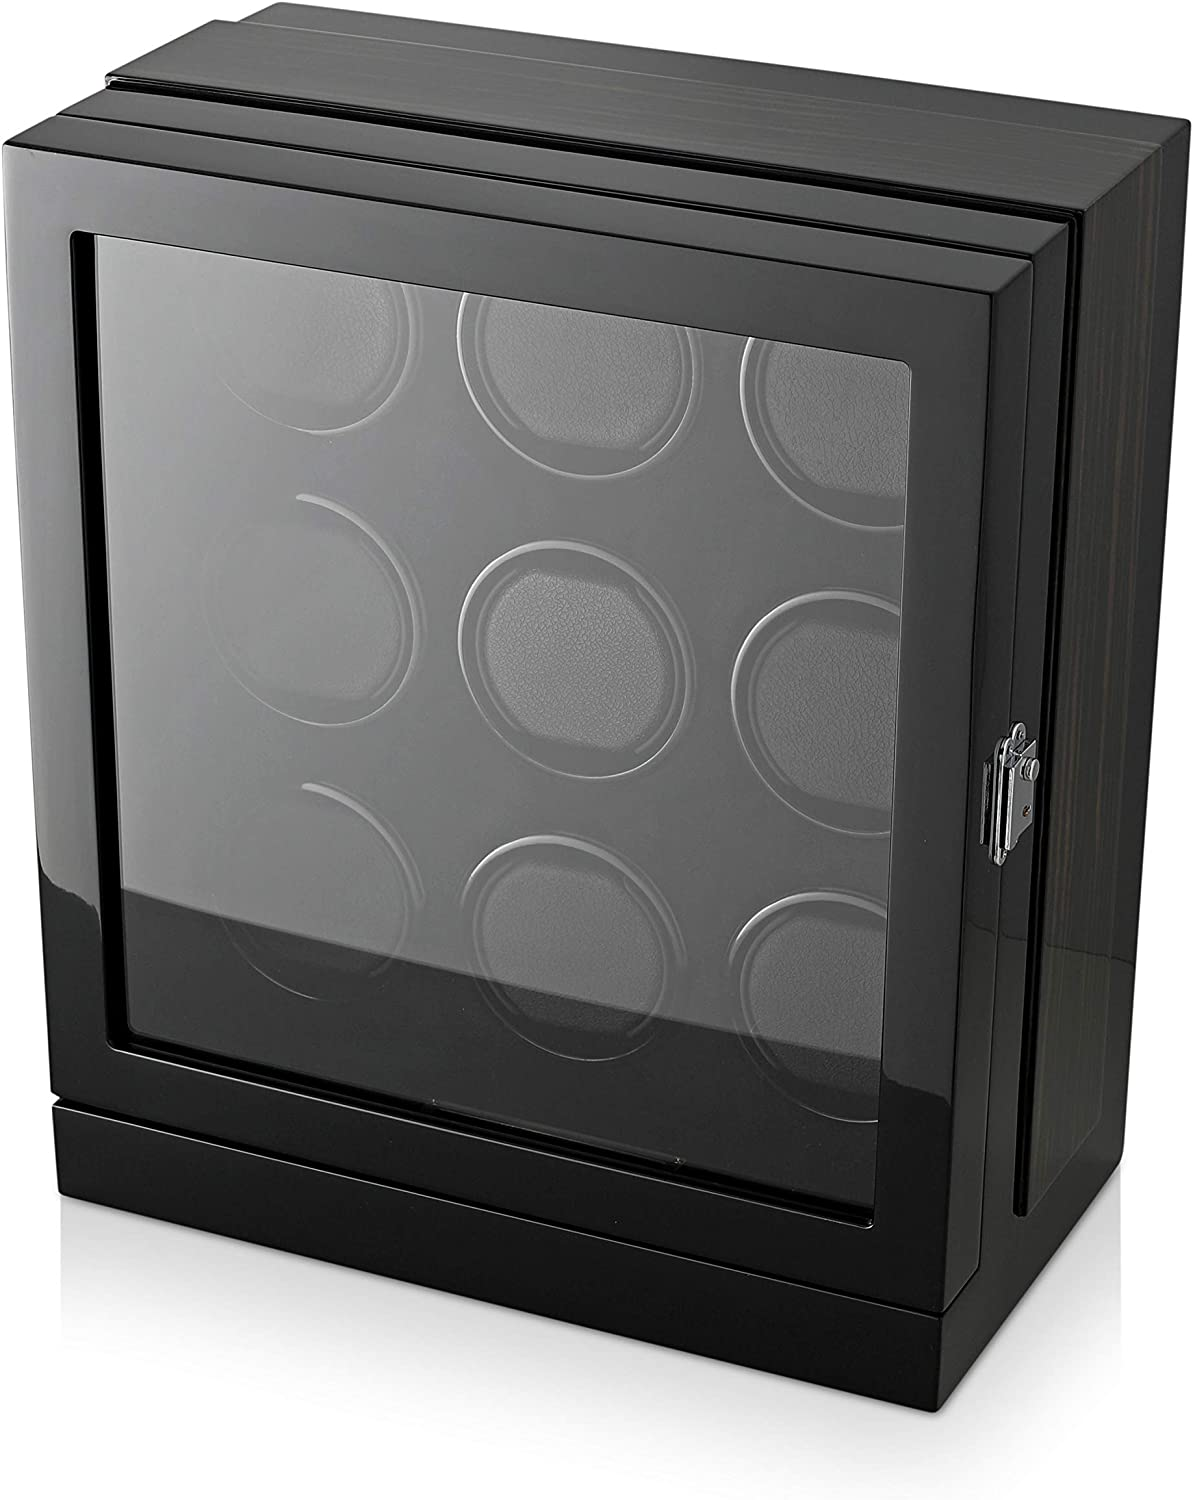 9 Watch Winder with Customisable We OFFer Direct sale of manufacturer at cheap prices Mode Winding LED and Backlight